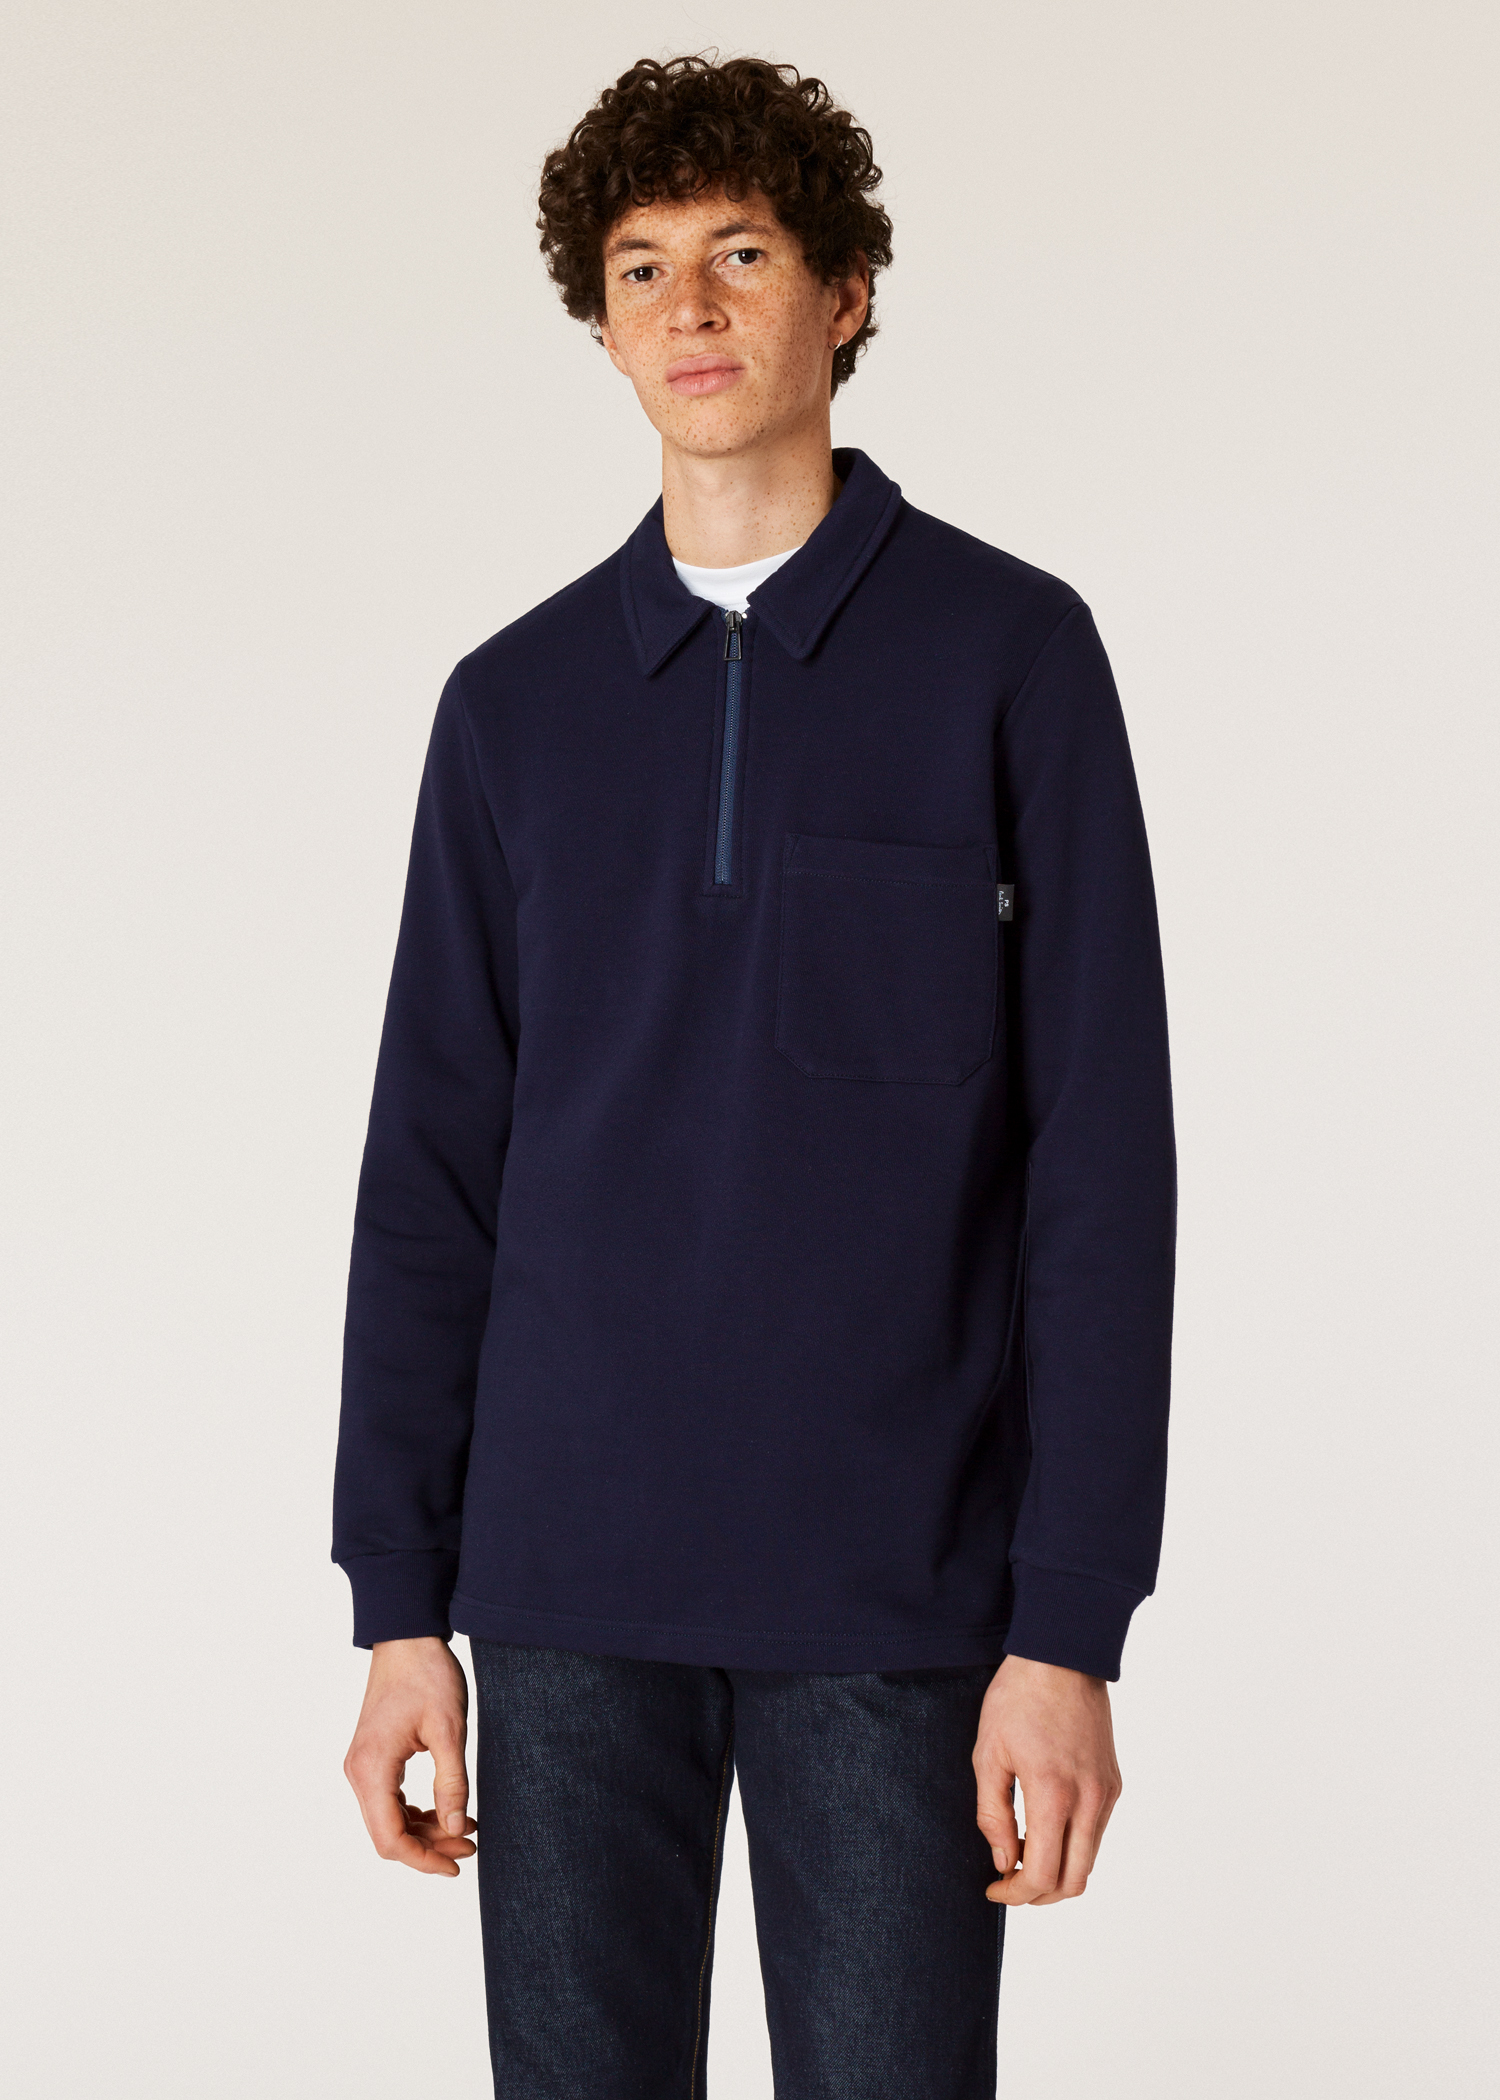 7091360c8a826f Model front close up - Men's Navy Half-Zip Cotton Rugby Top Paul Smith